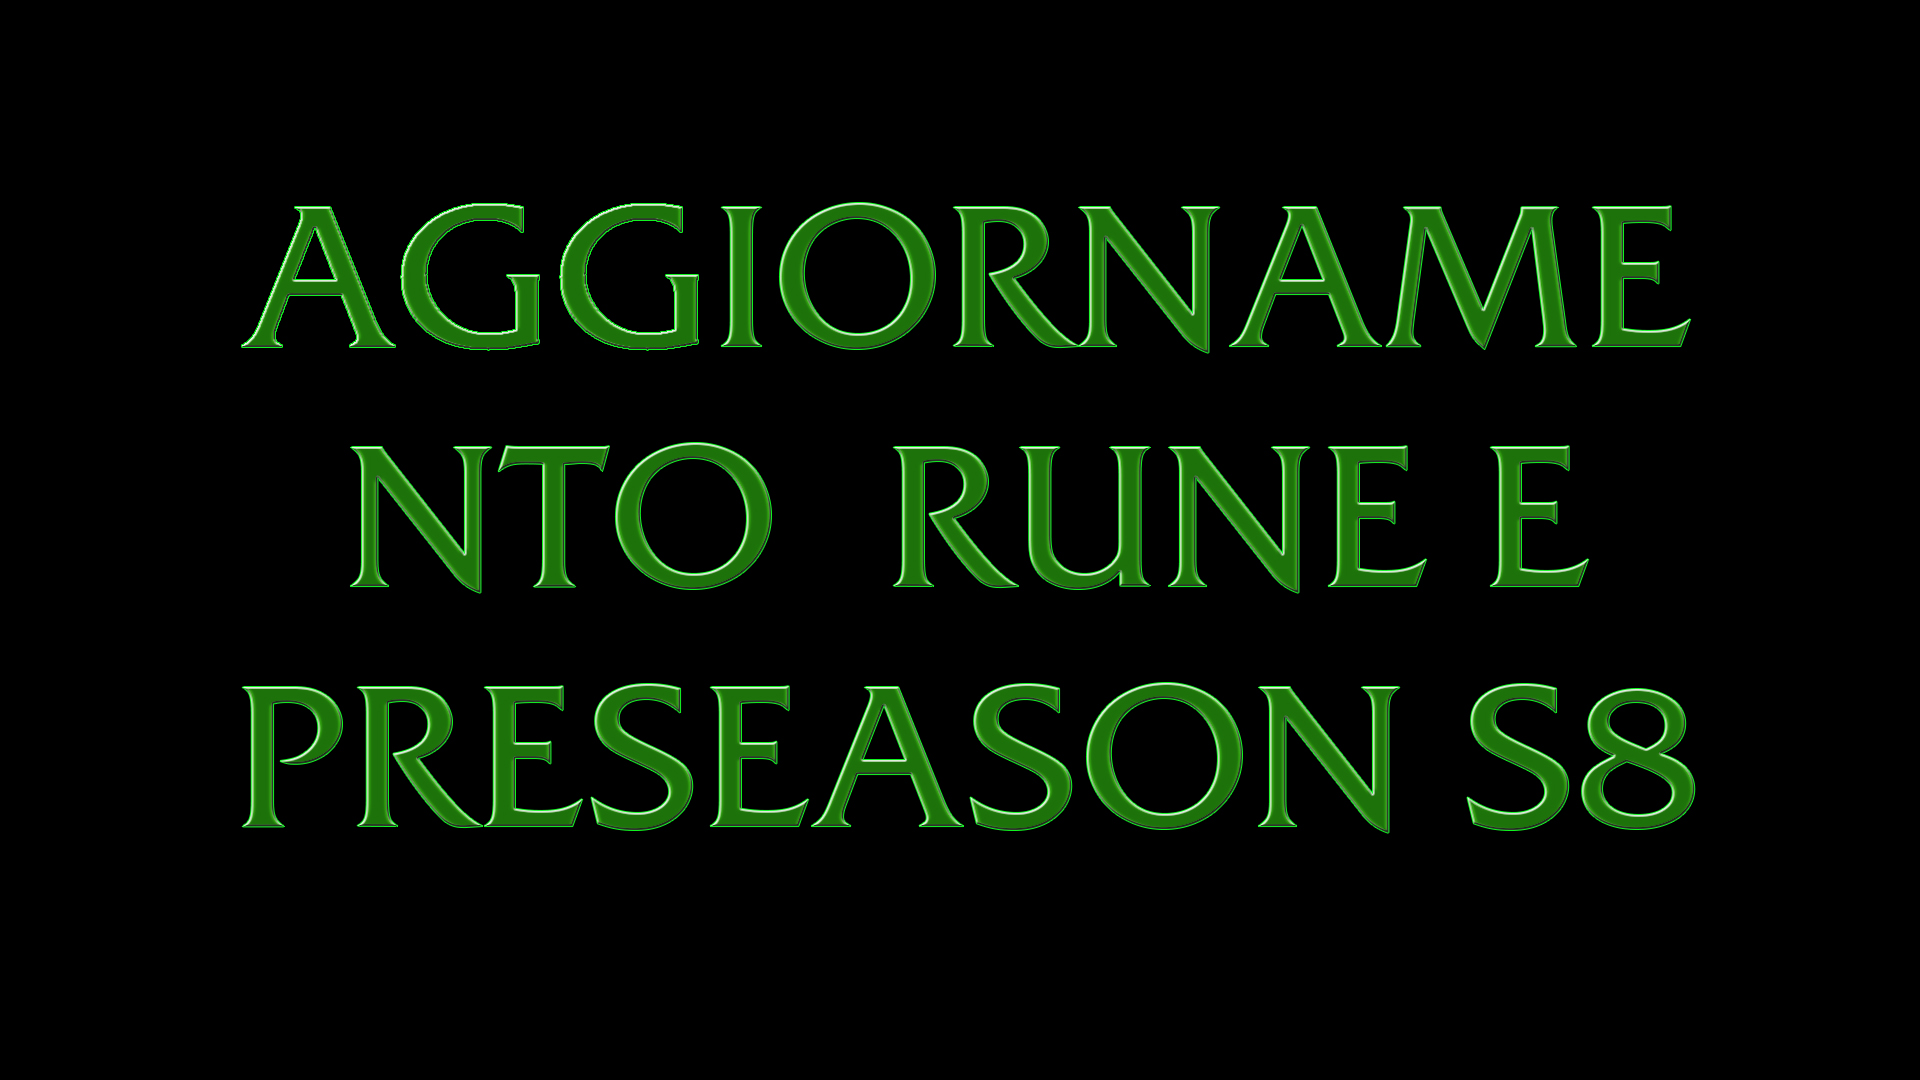 Aggiornamento Rune e Preseason S8 League of Legends